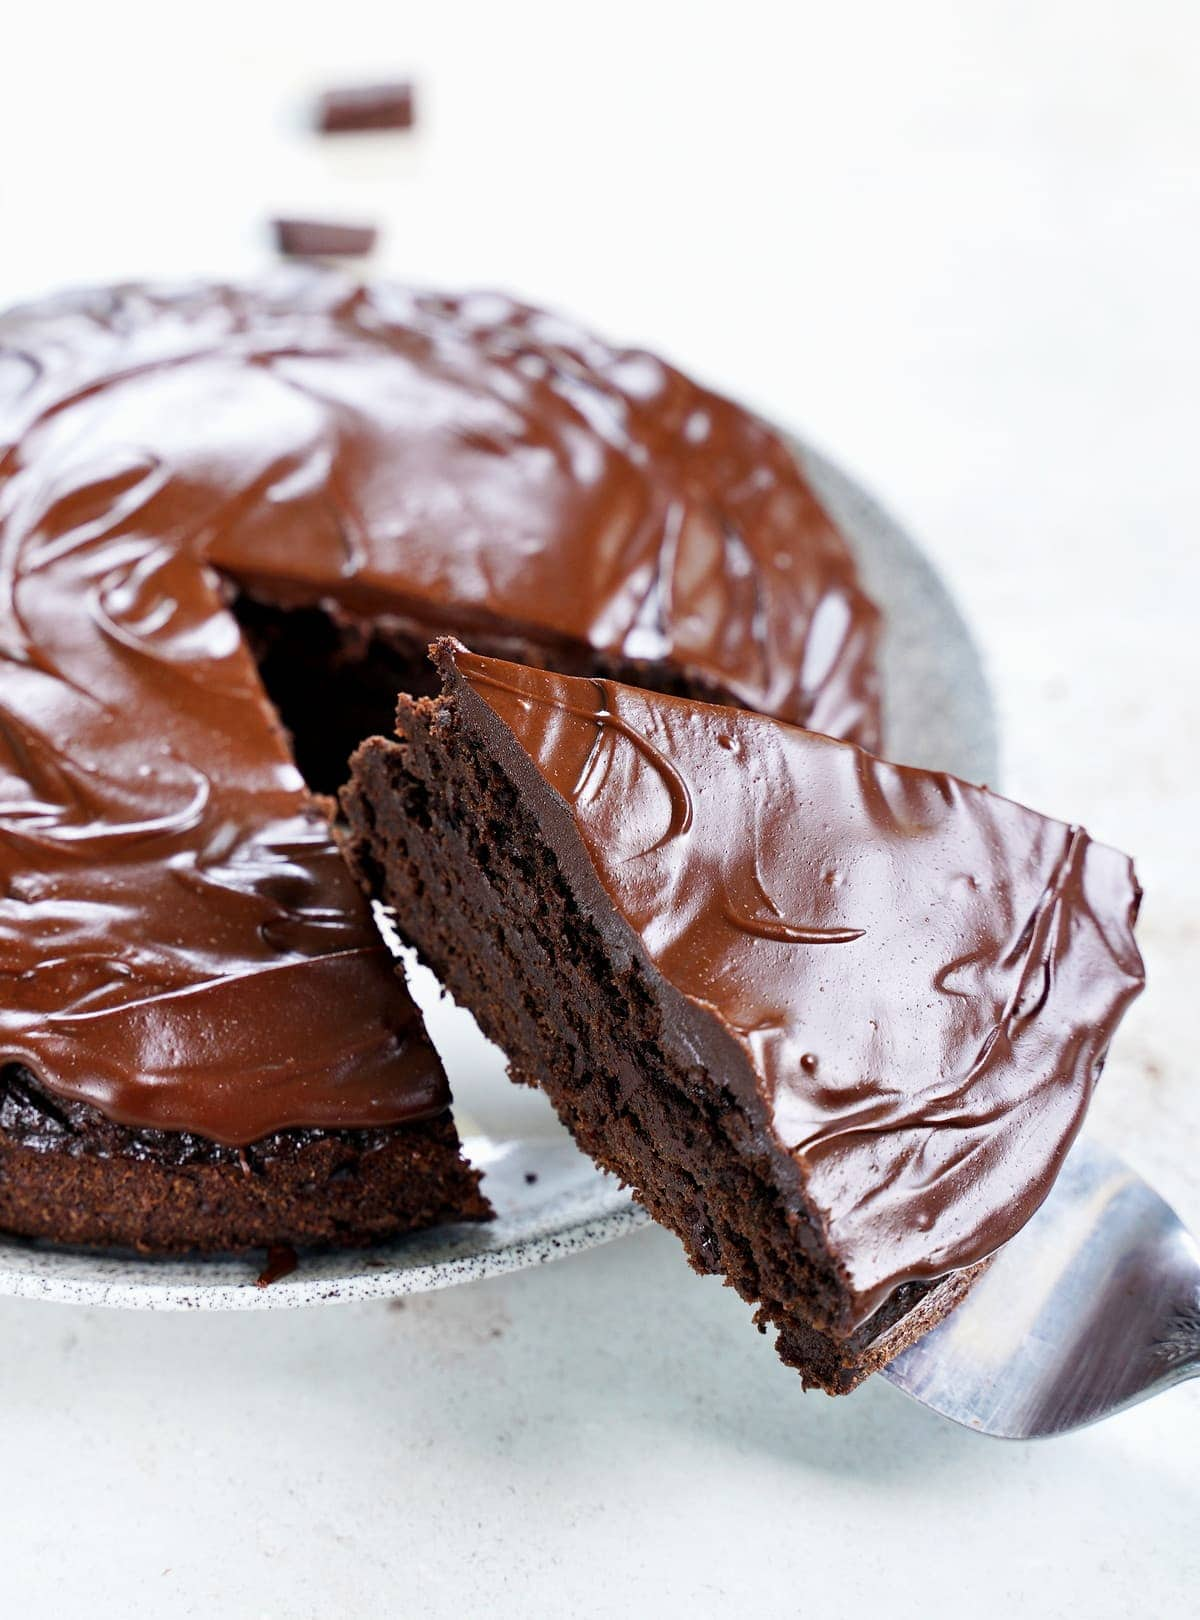 close-up of vegan chocolate cake with ganache and a piece cut out